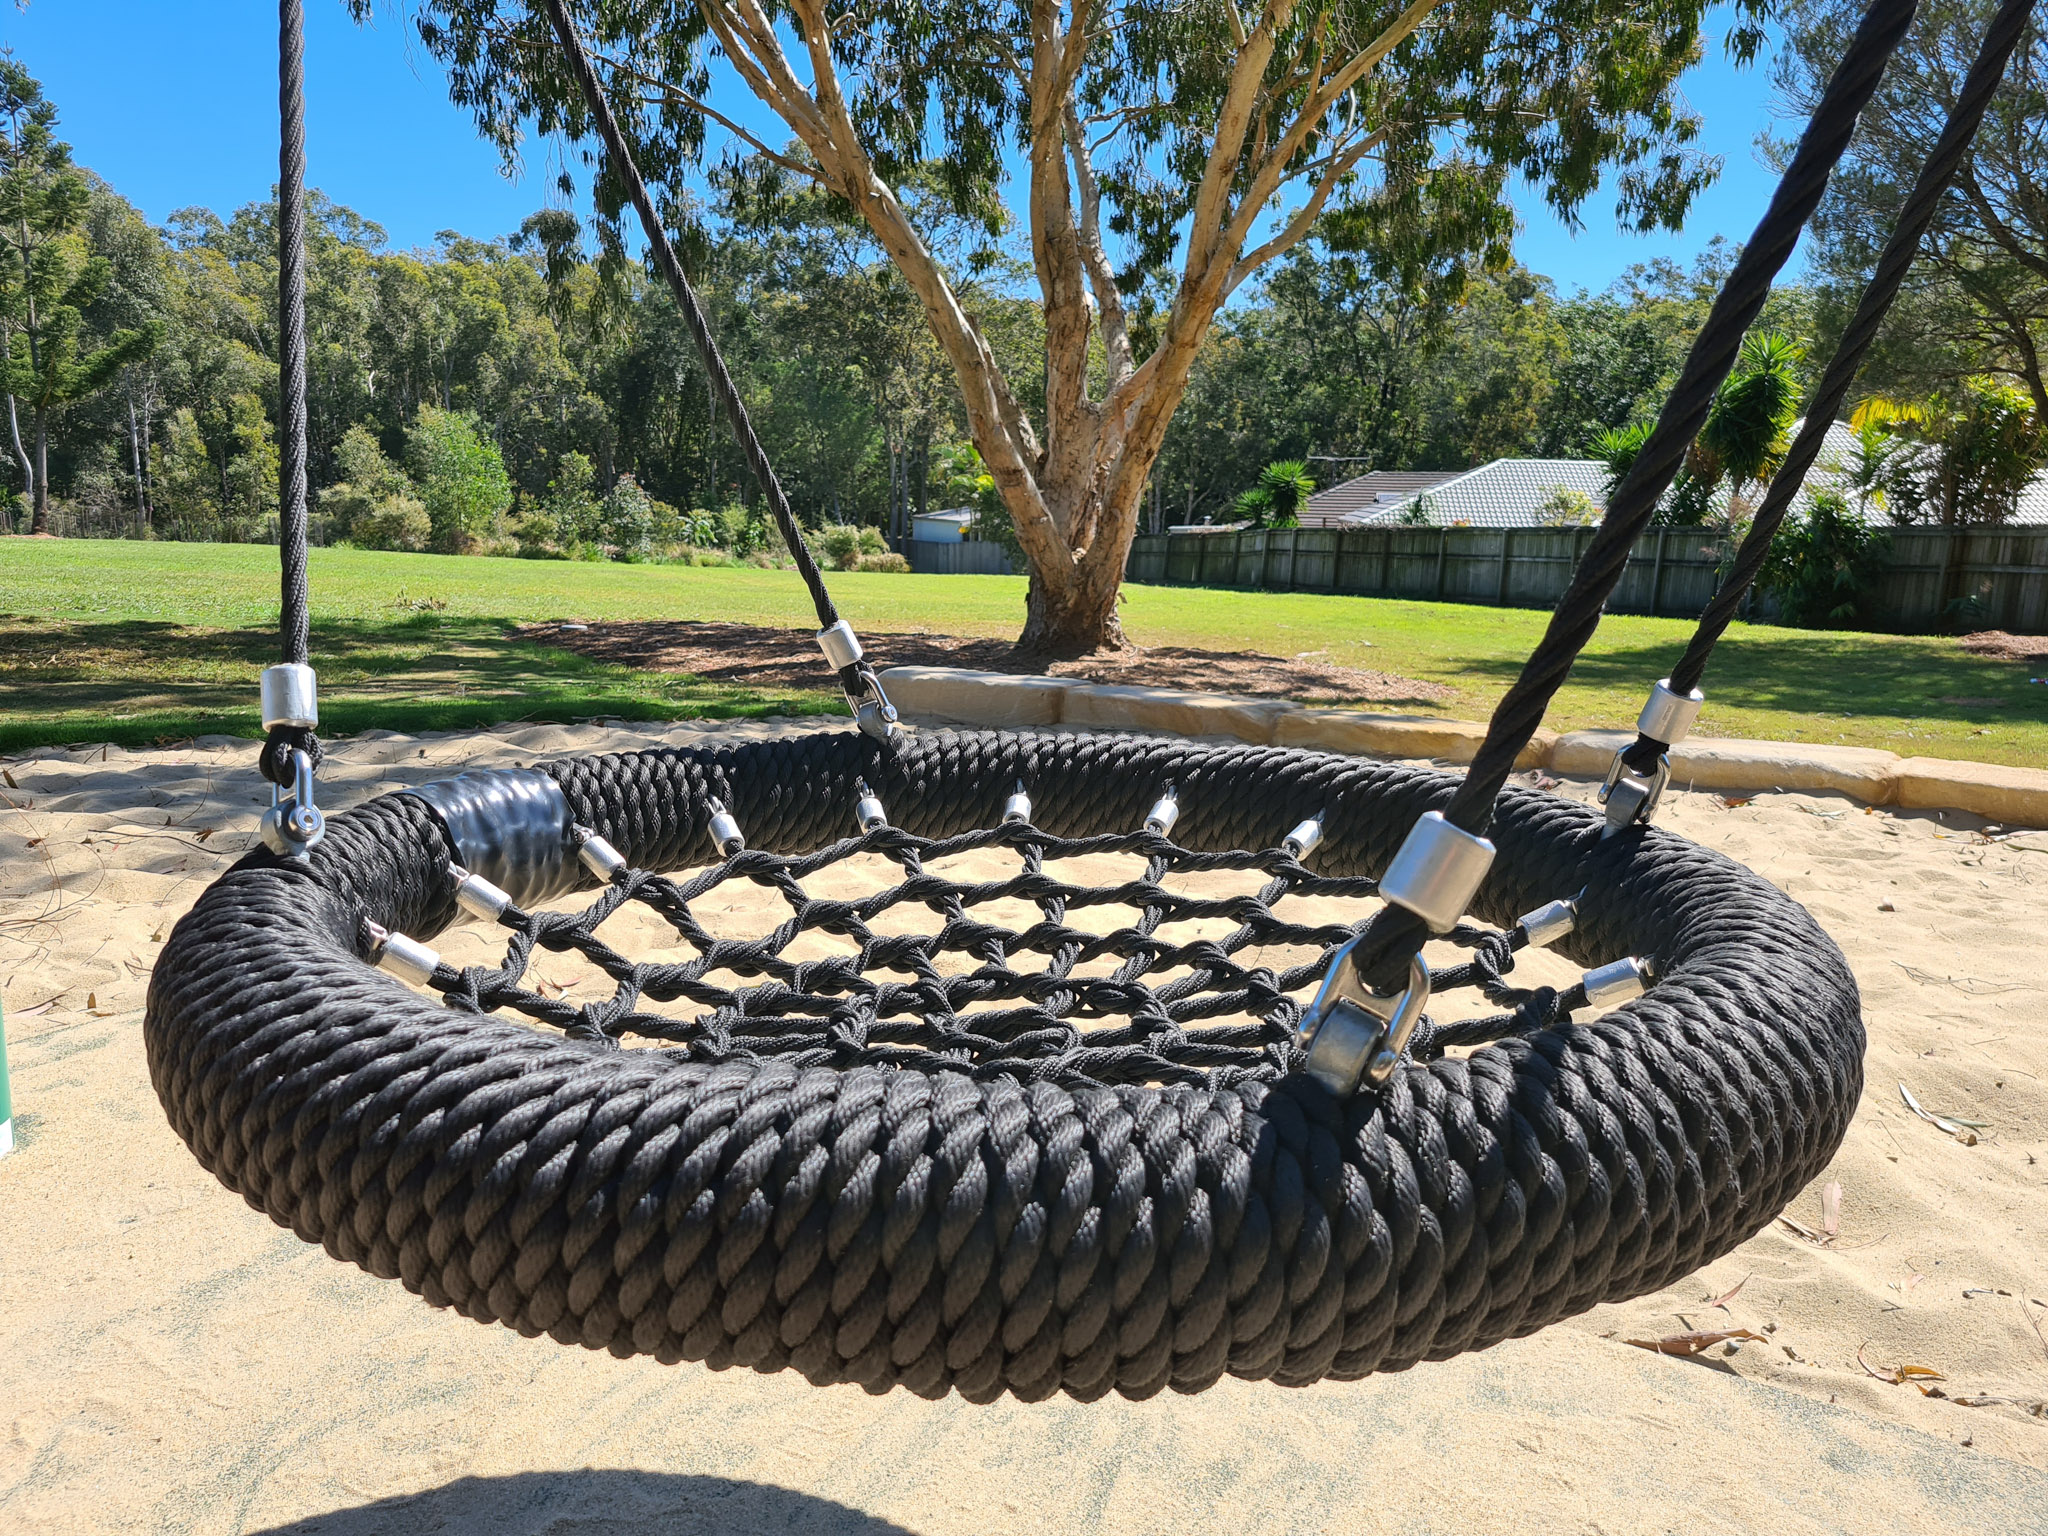 riley-peter-place-park-rope-play-10